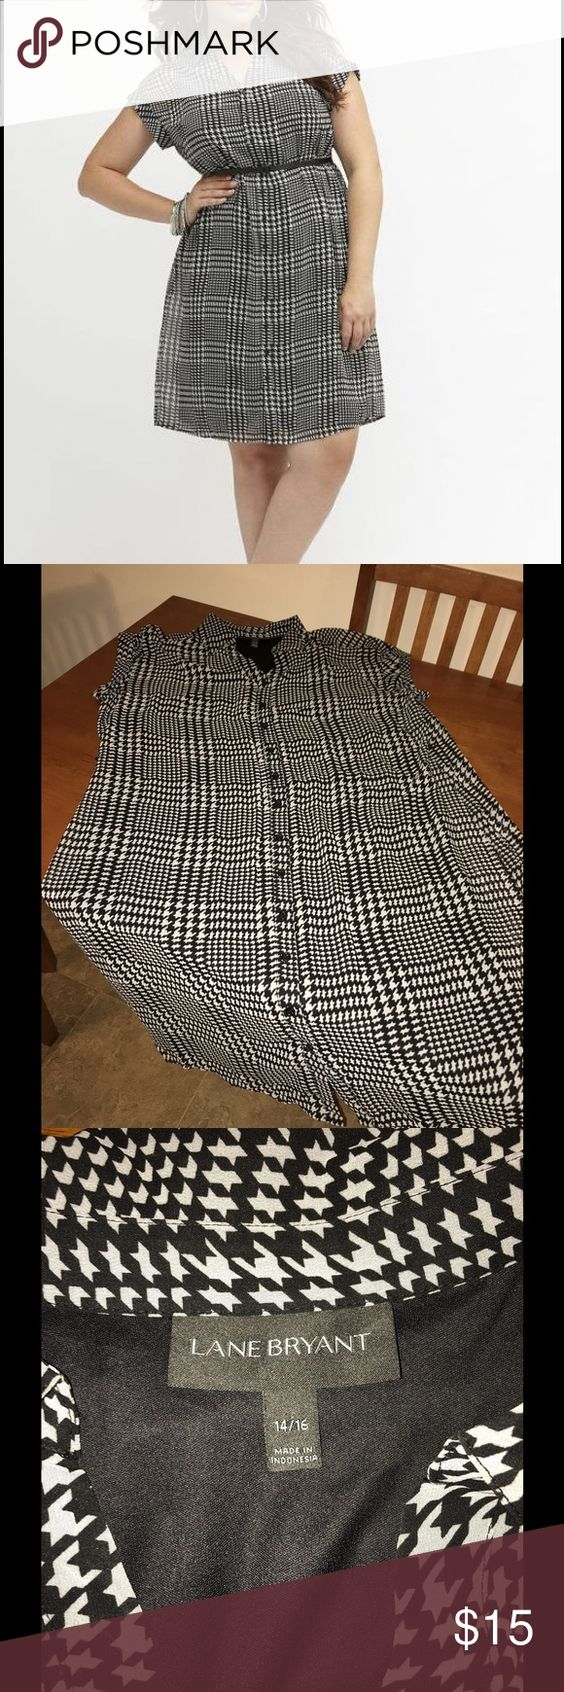 Lane Bryant 14/16 Houndstooth Shirt Dress Shirt style dress.  Houndstooth print.  Top layer is sheer, lined though.   Size 14/16.  Belt not included!   Lane Bryant.  Great condition!   Important:   All items are freshly laundered as applicable prior to shipping (new items and shoes excluded).  Not all my items are from pet/smoke free homes.  Price is reduced to reflect this!   Thank you for looking! Lane Bryant Dresses